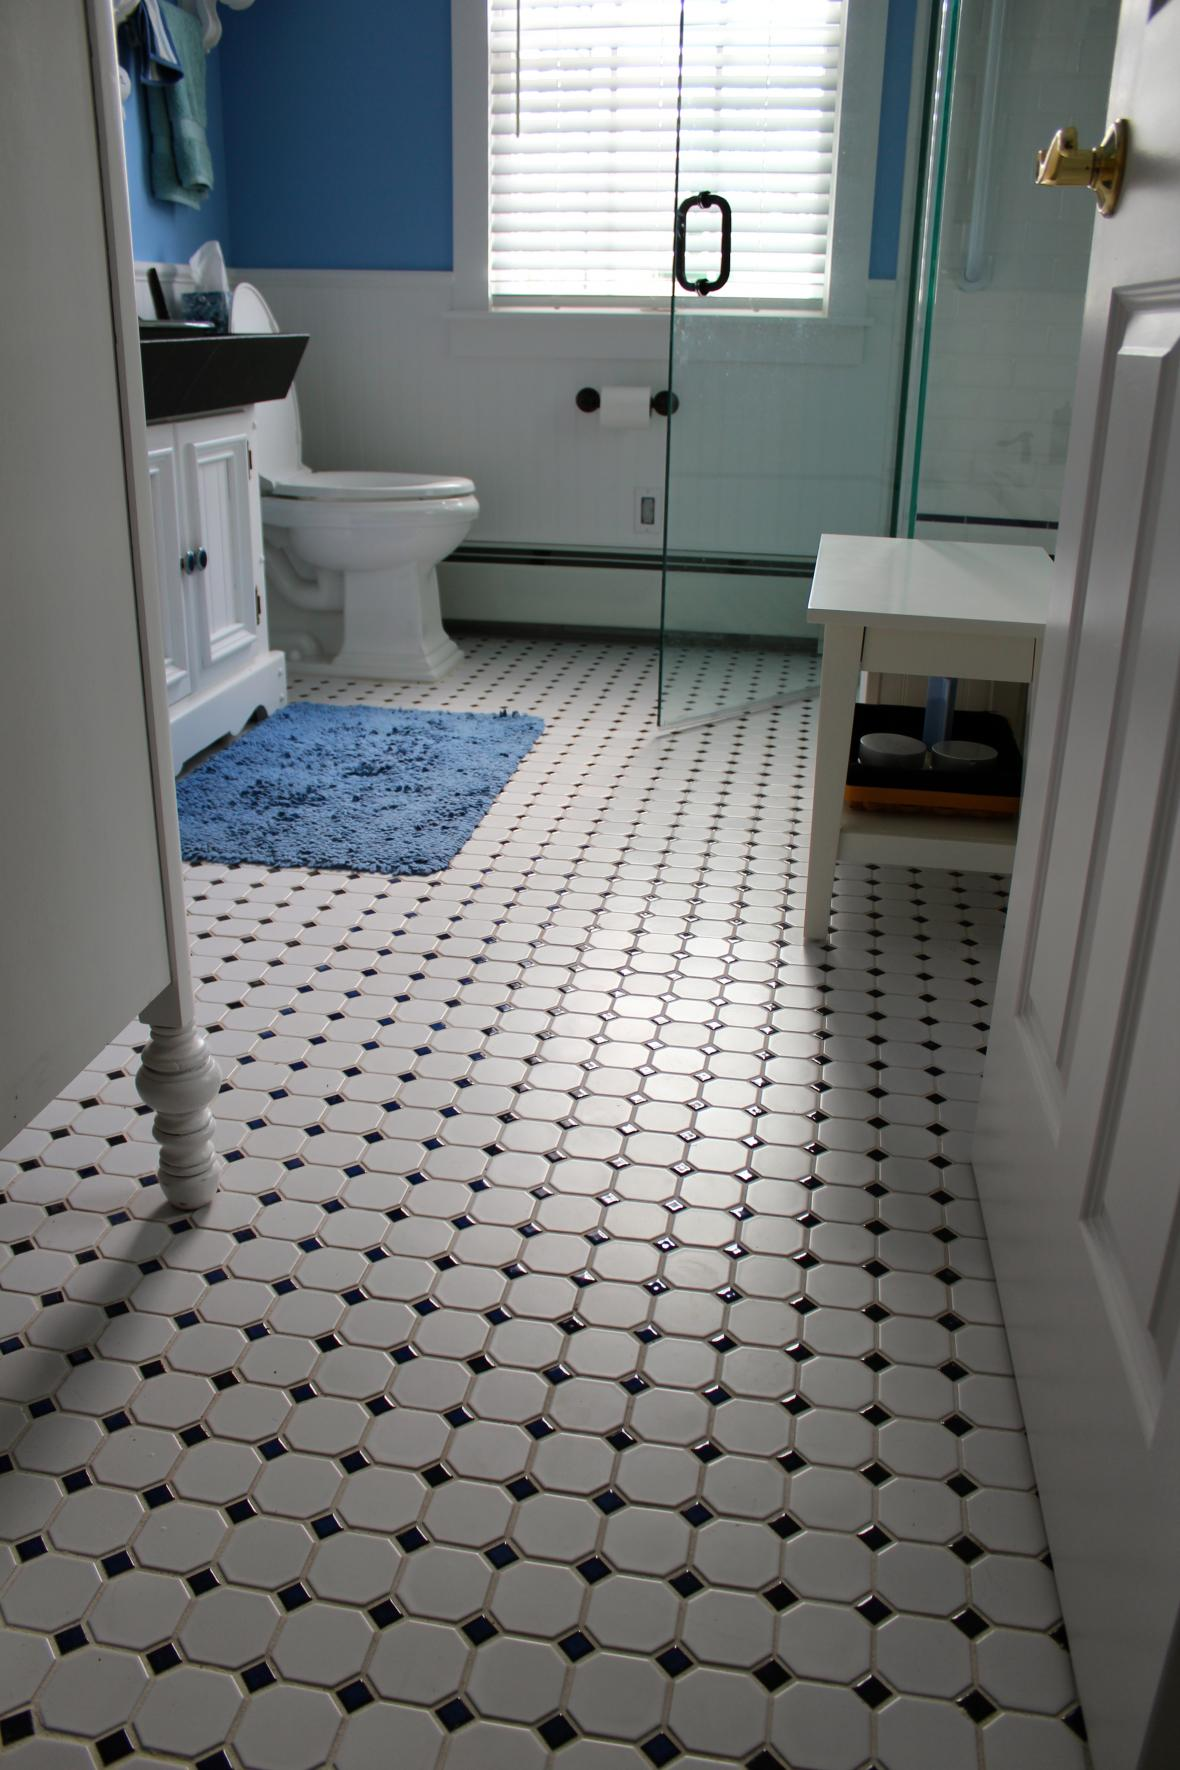 Bathroom floor ceramic tile patterns 2017 2018 best for Ceramic tile patterns for bathroom floors